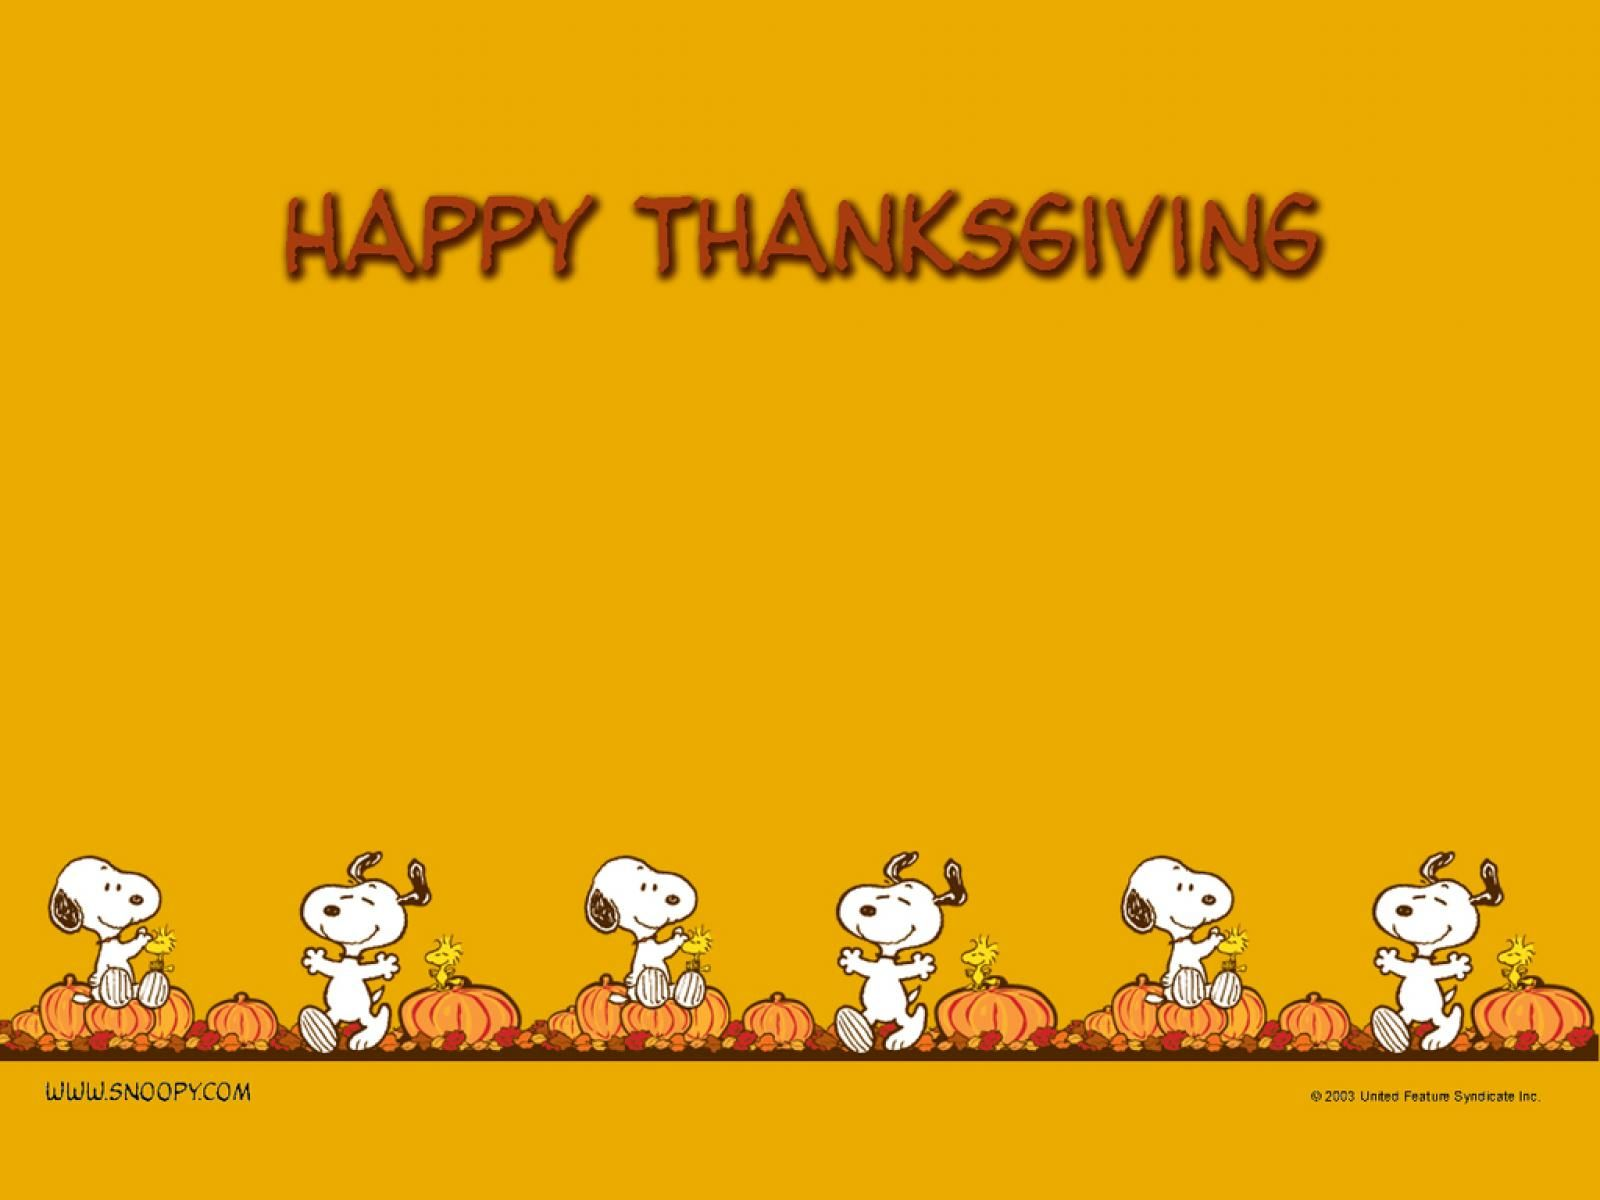 Free Disney Thanksgiving Wallpapers Hd « Long Wallpapers